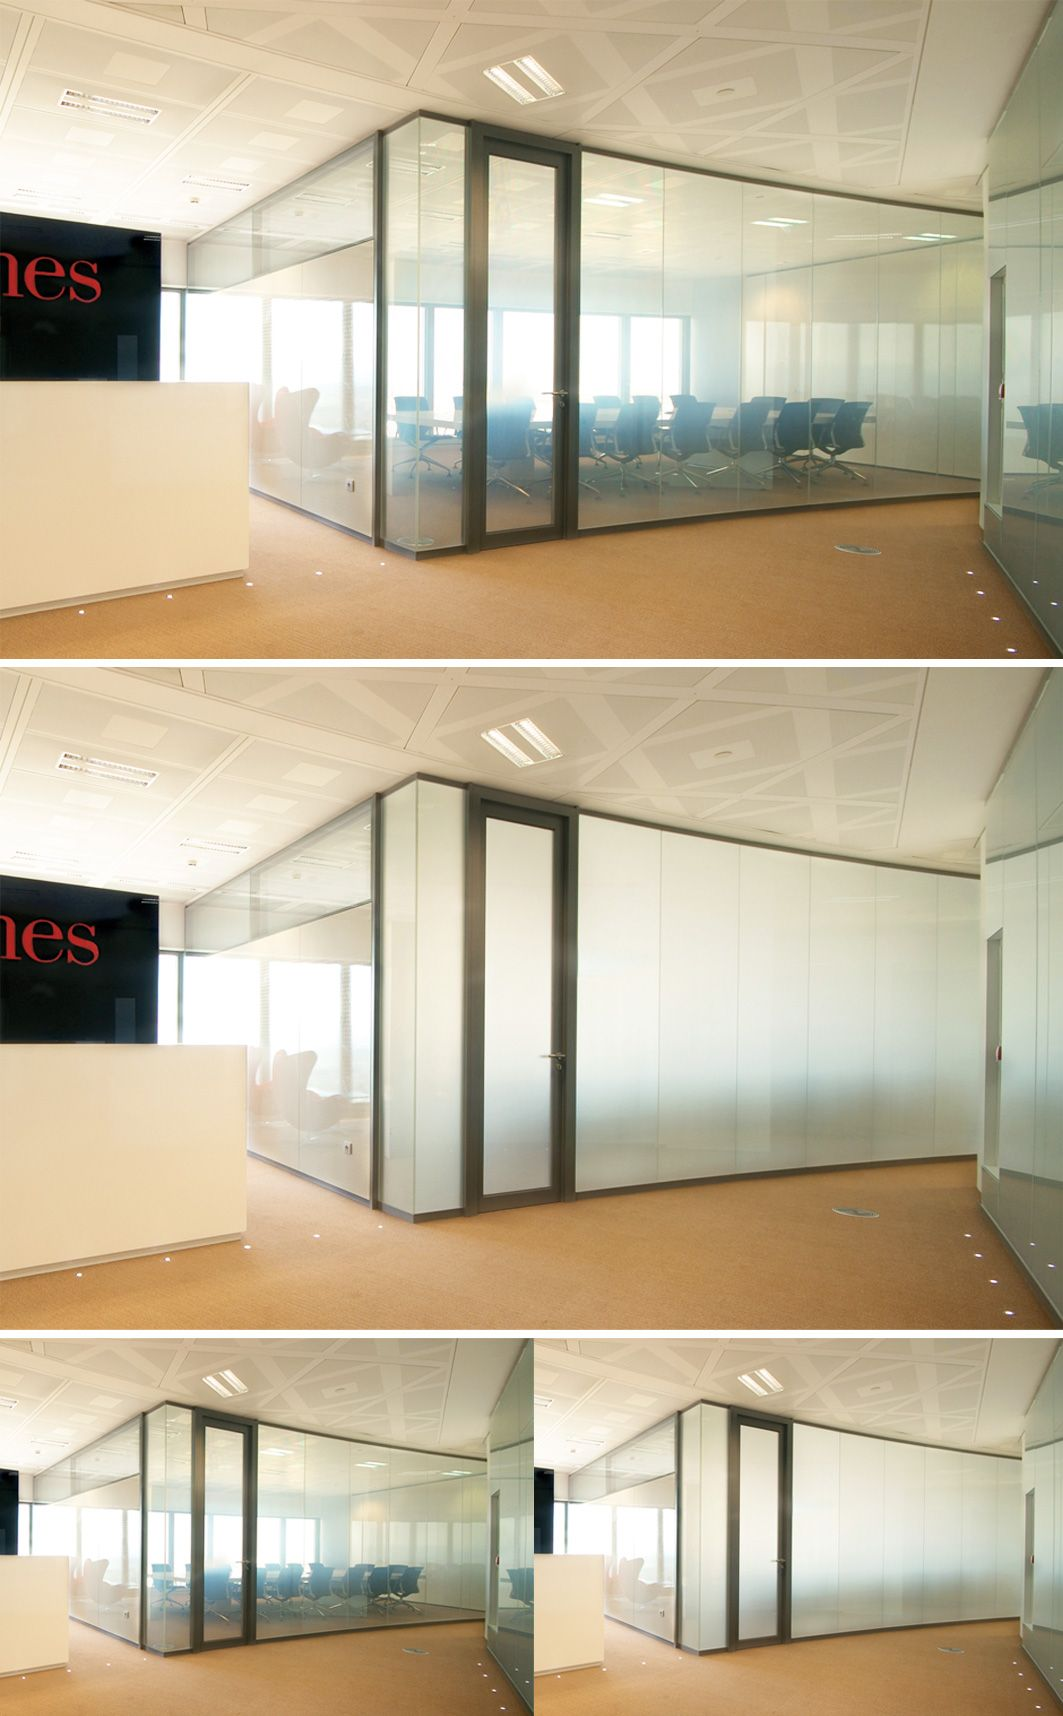 Privacy Partition Wall : Privacy glass solution for high tech interior partitioning